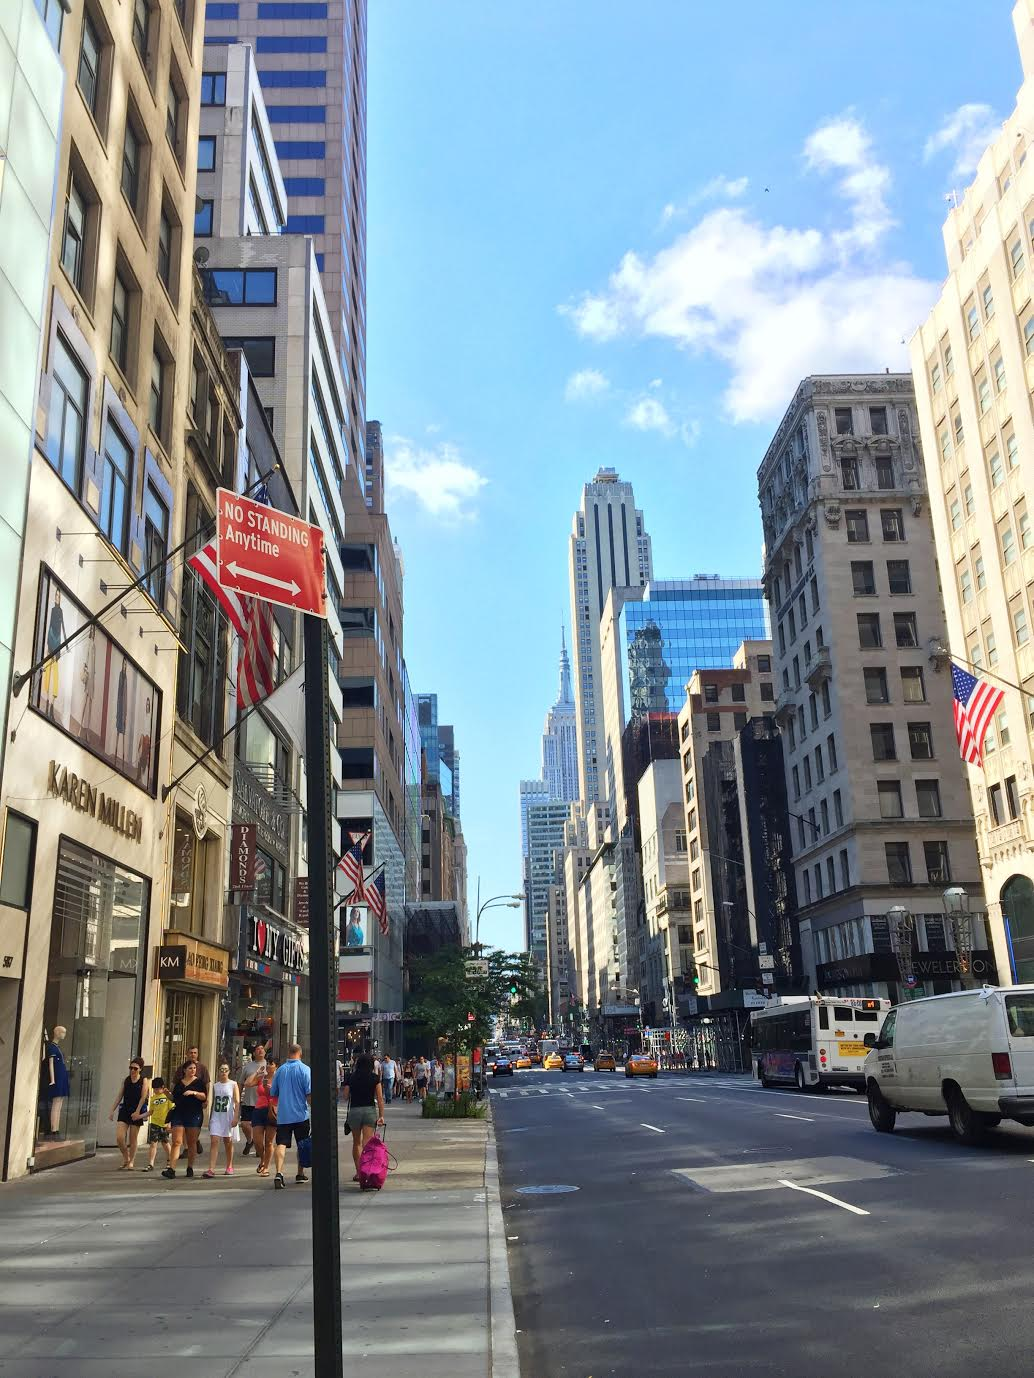 Things to see in New York City